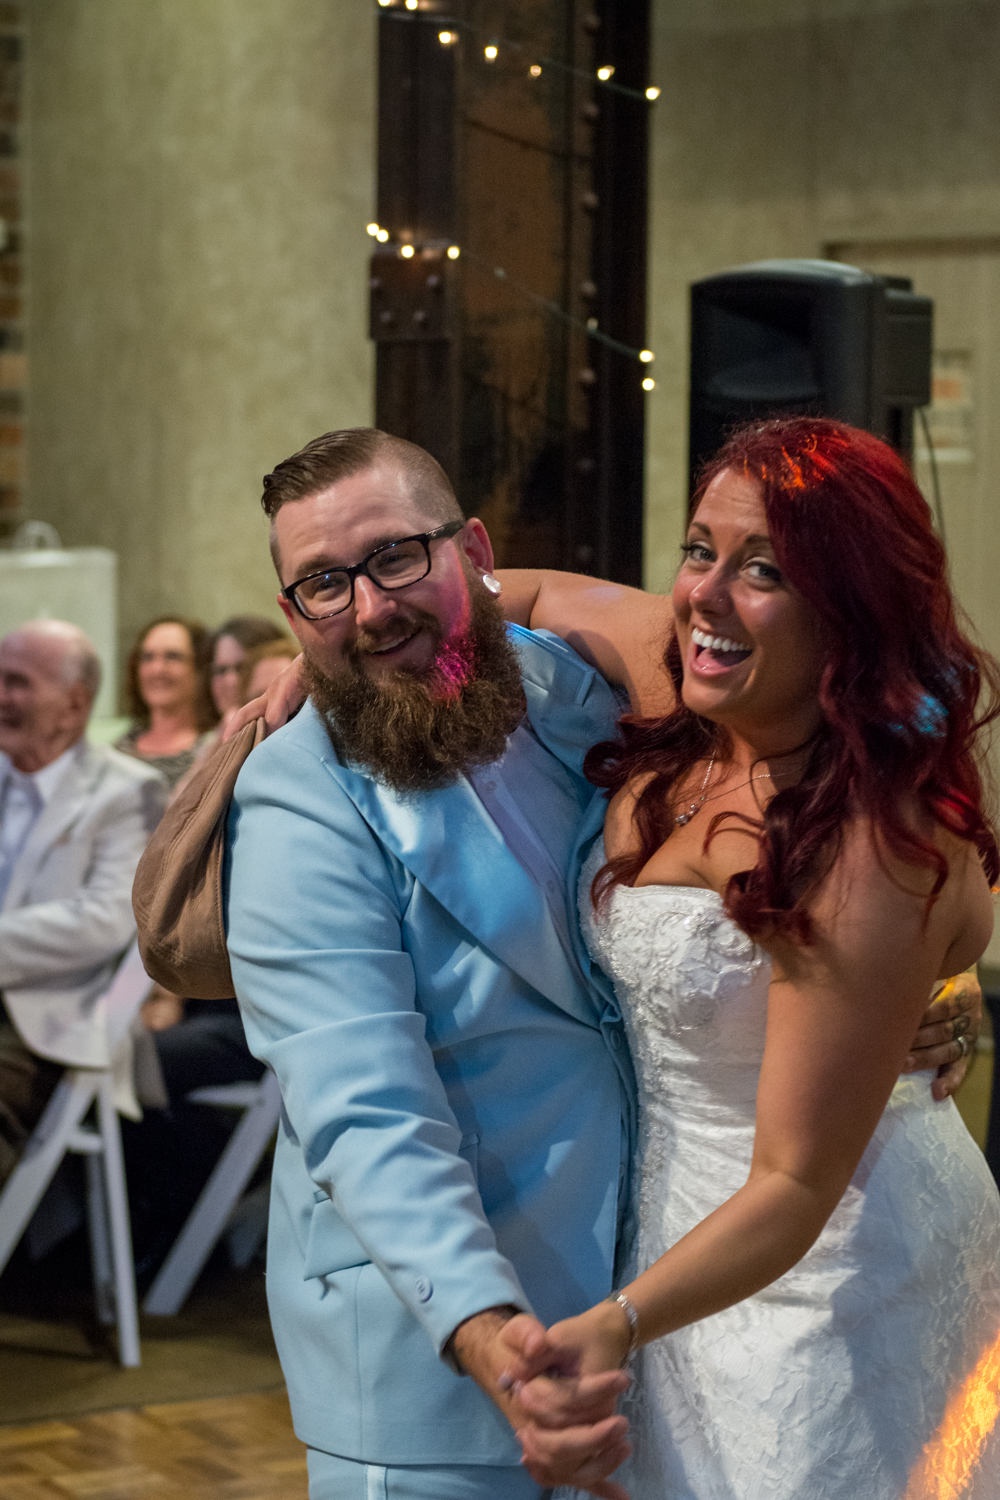 life by pictures photography blog wedding columbus ohio 9.jpg